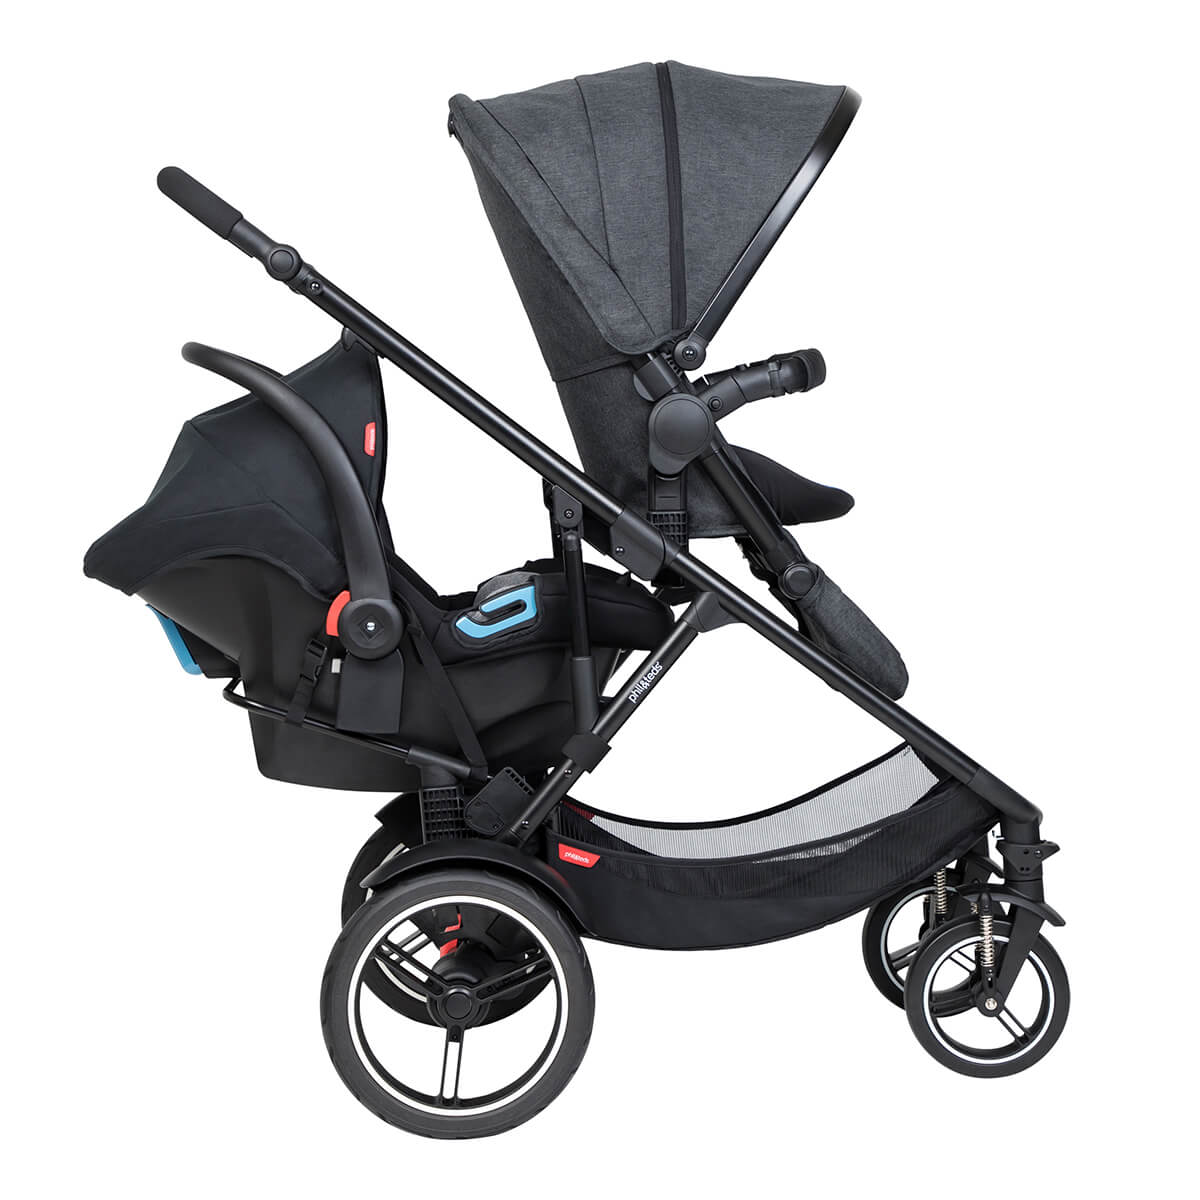 https://cdn.accentuate.io/4509867409505/19793939726506/philteds-voyager-buggy-in-forward-facing-mode-with-travel-system-in-the-rear-v1626485364883.jpg?1200x1200